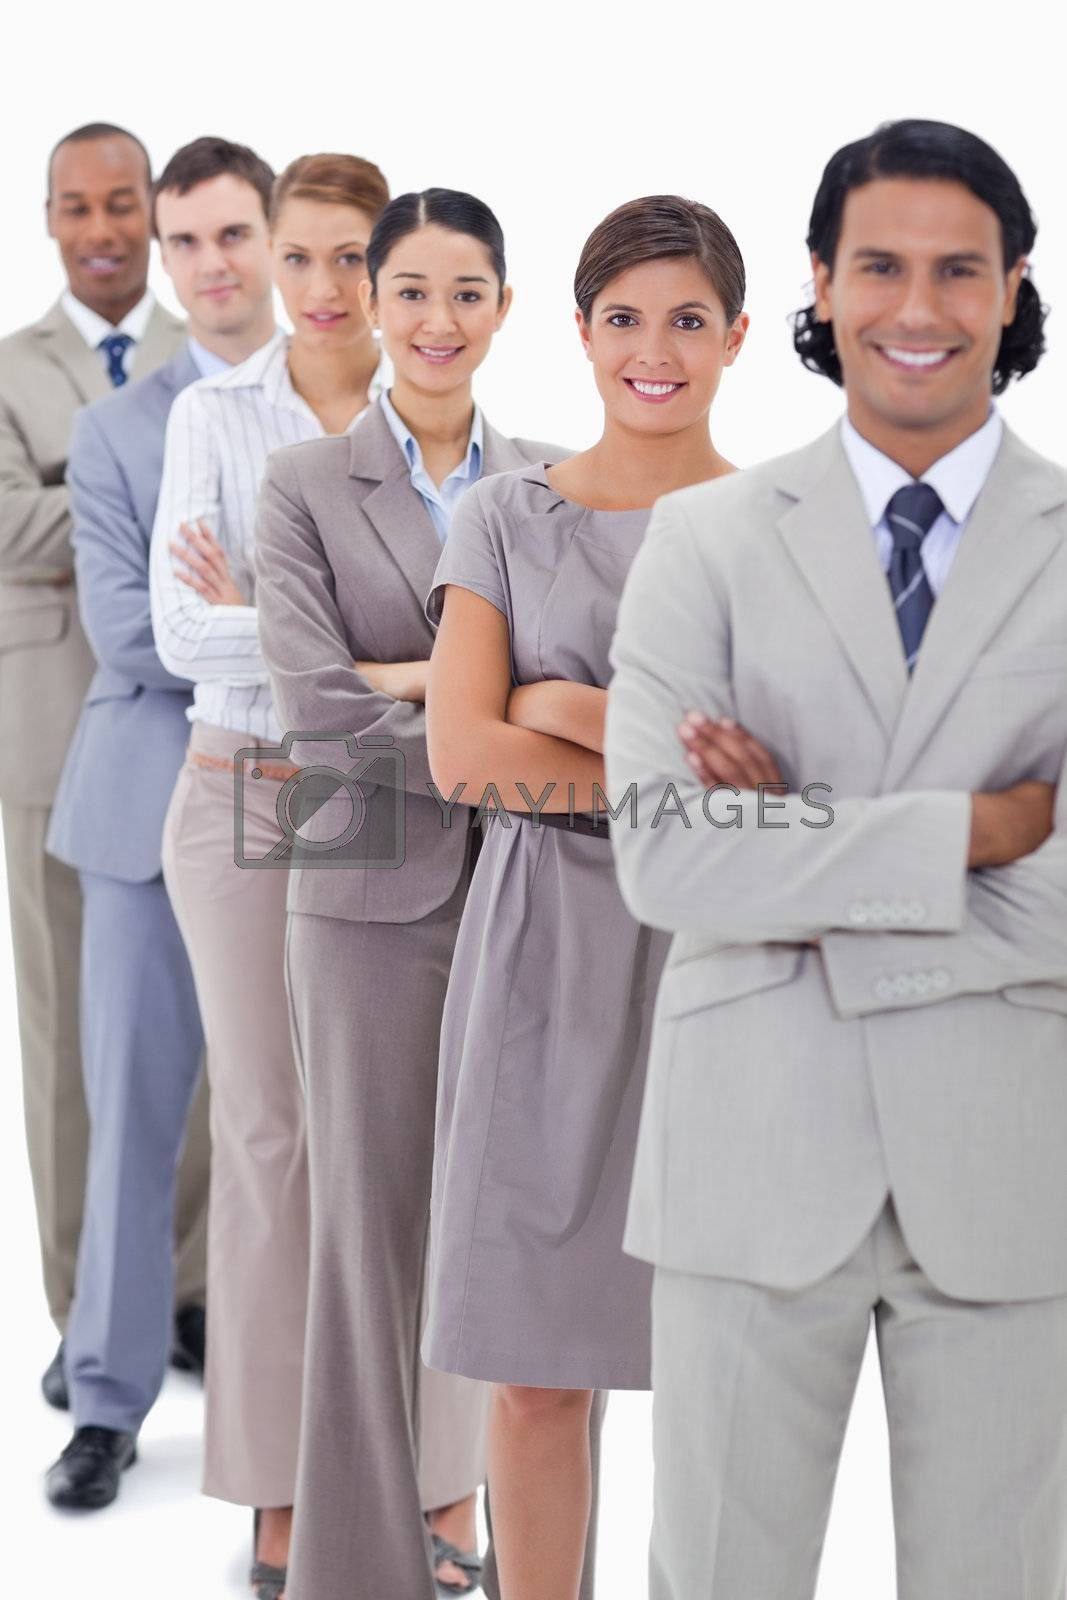 Close-up of a business team in a single line crossing their arms with focus on the first woman